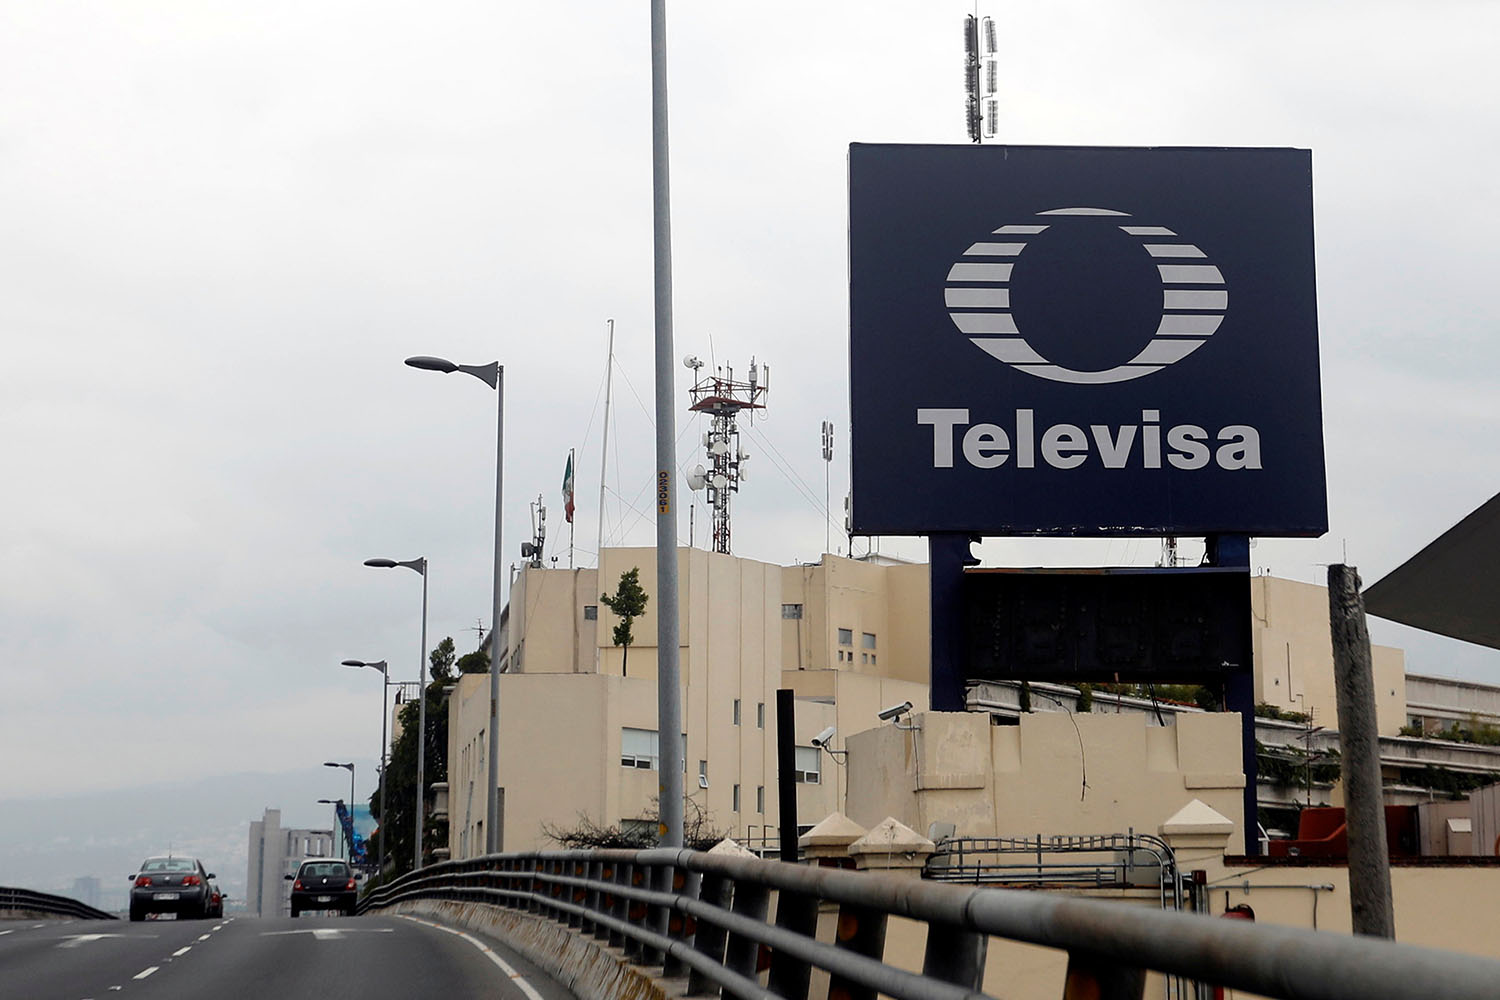 The logo of broadcaster Televisa is seen outside its headquarters in Mexico City, Mexico, July 10, 2017. REUTERS/Edgard Garrido